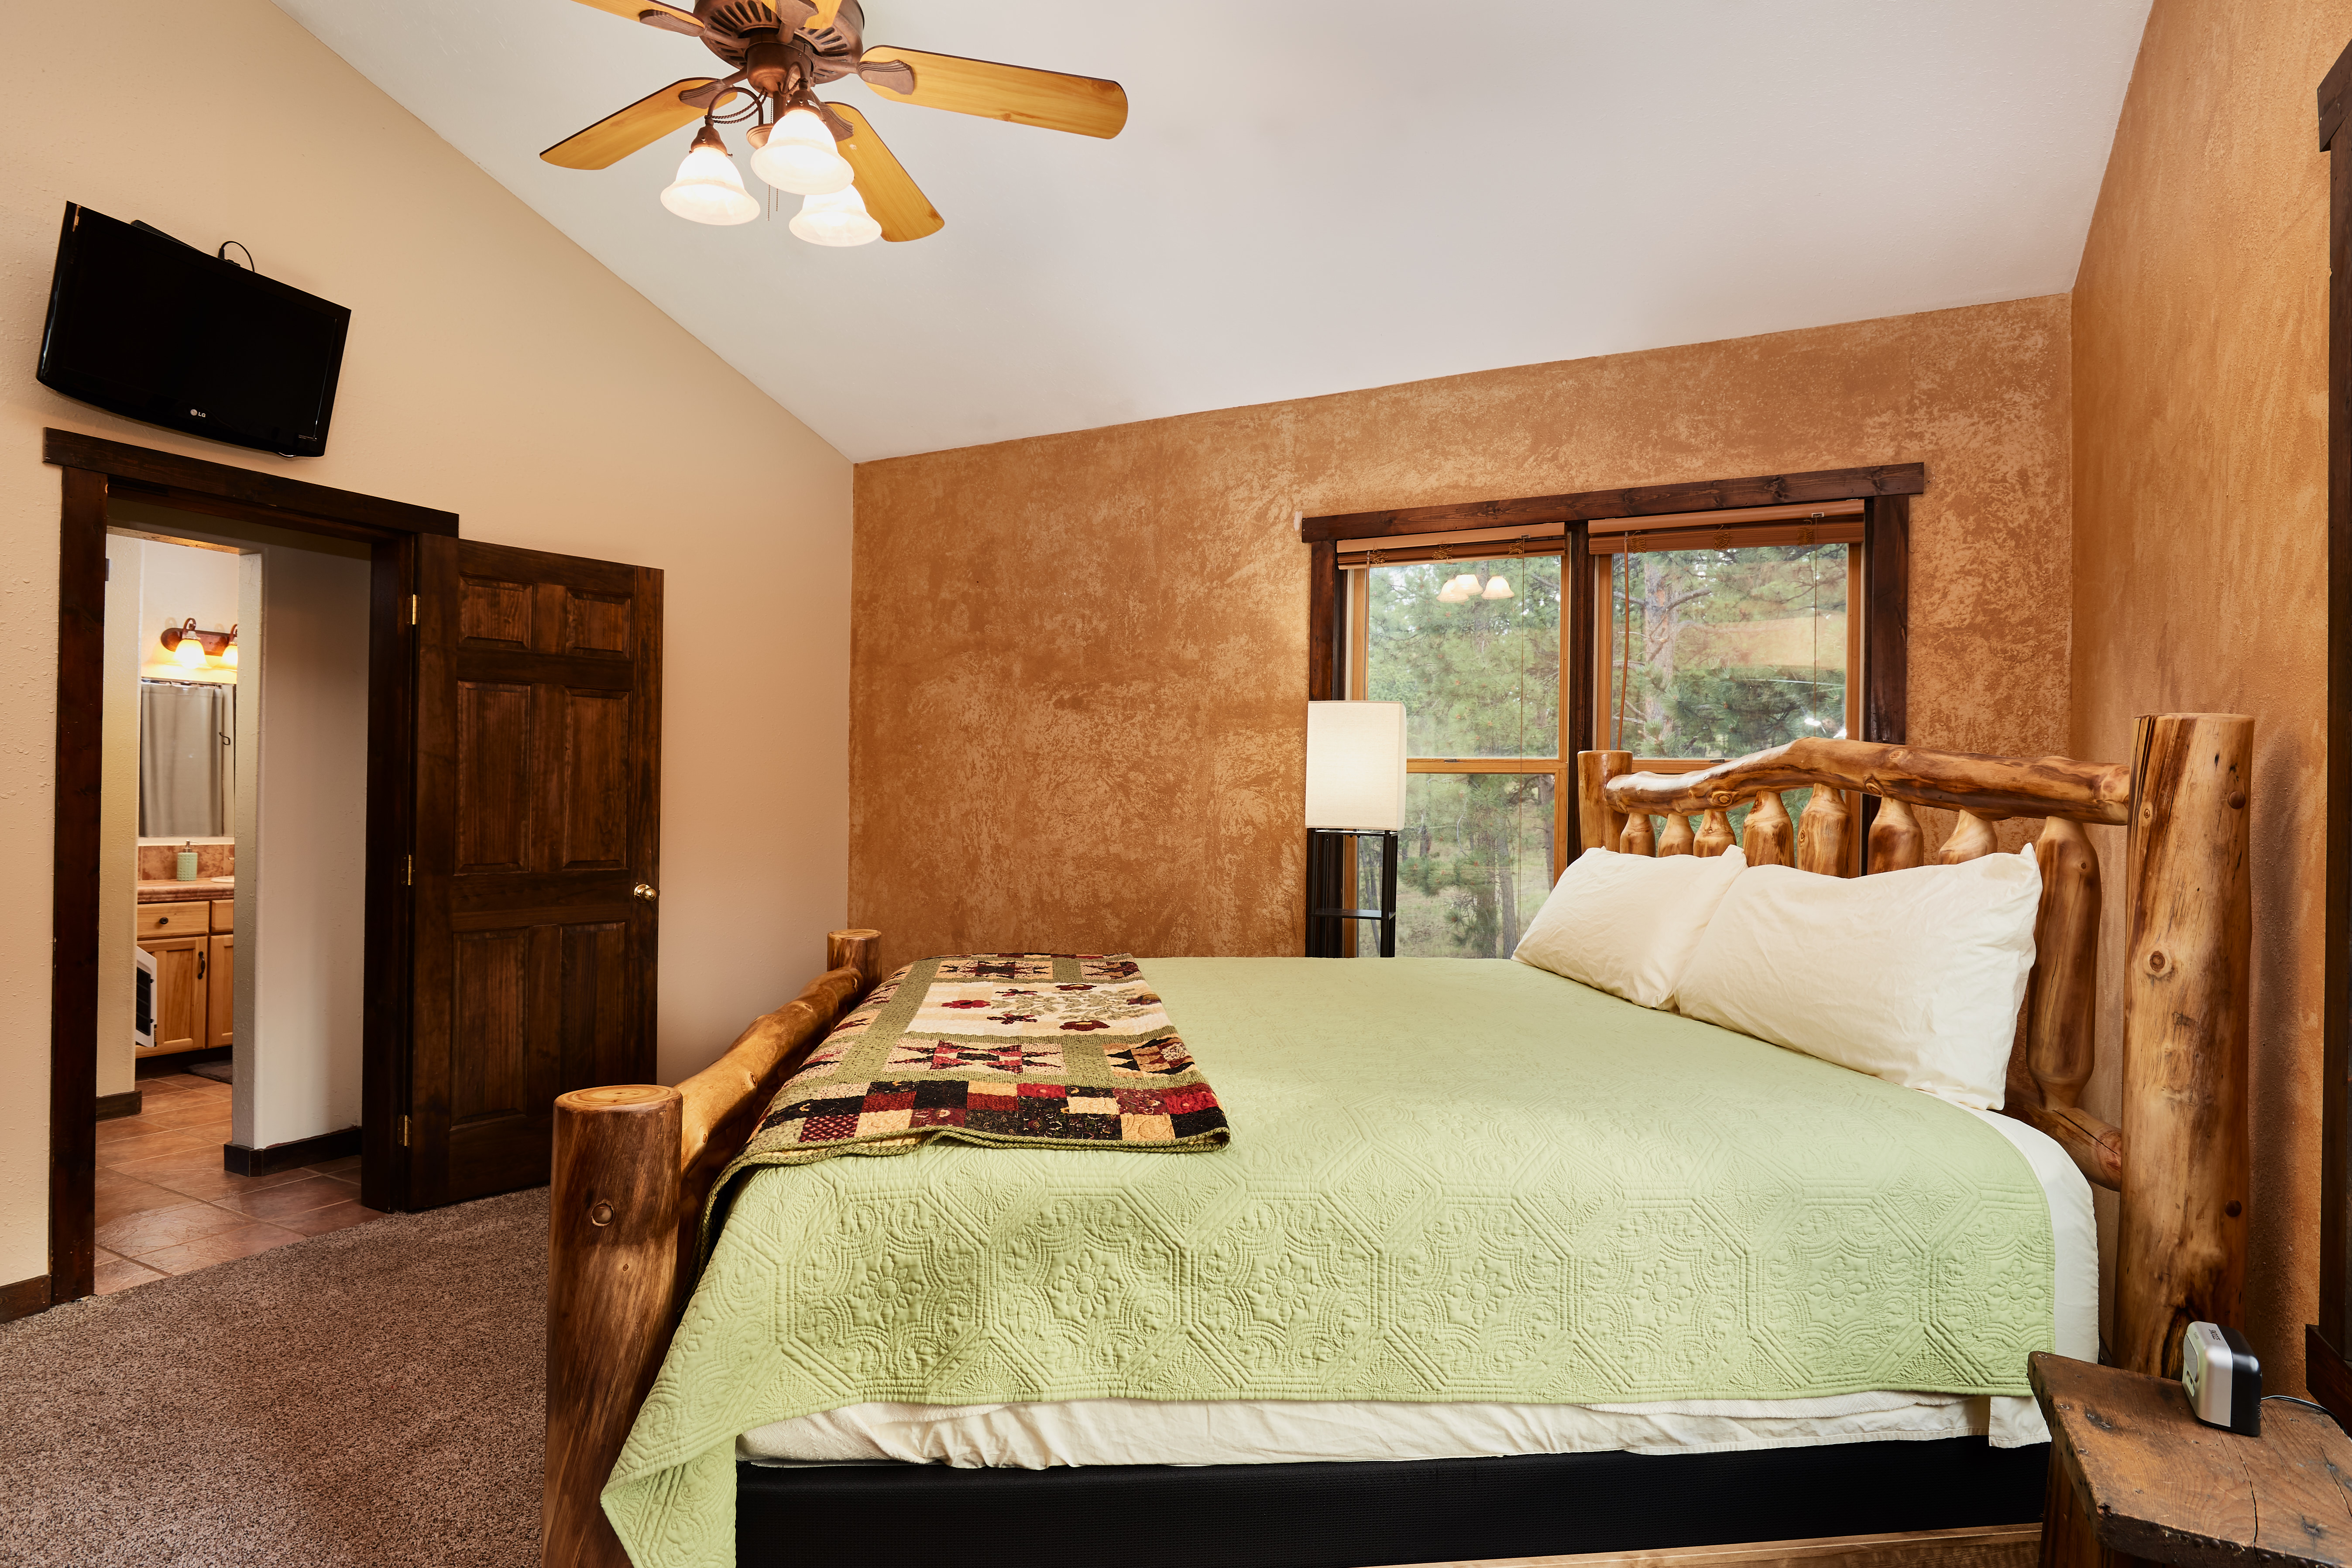 The upstairs master bedroom has a private entrance to the bathroom.